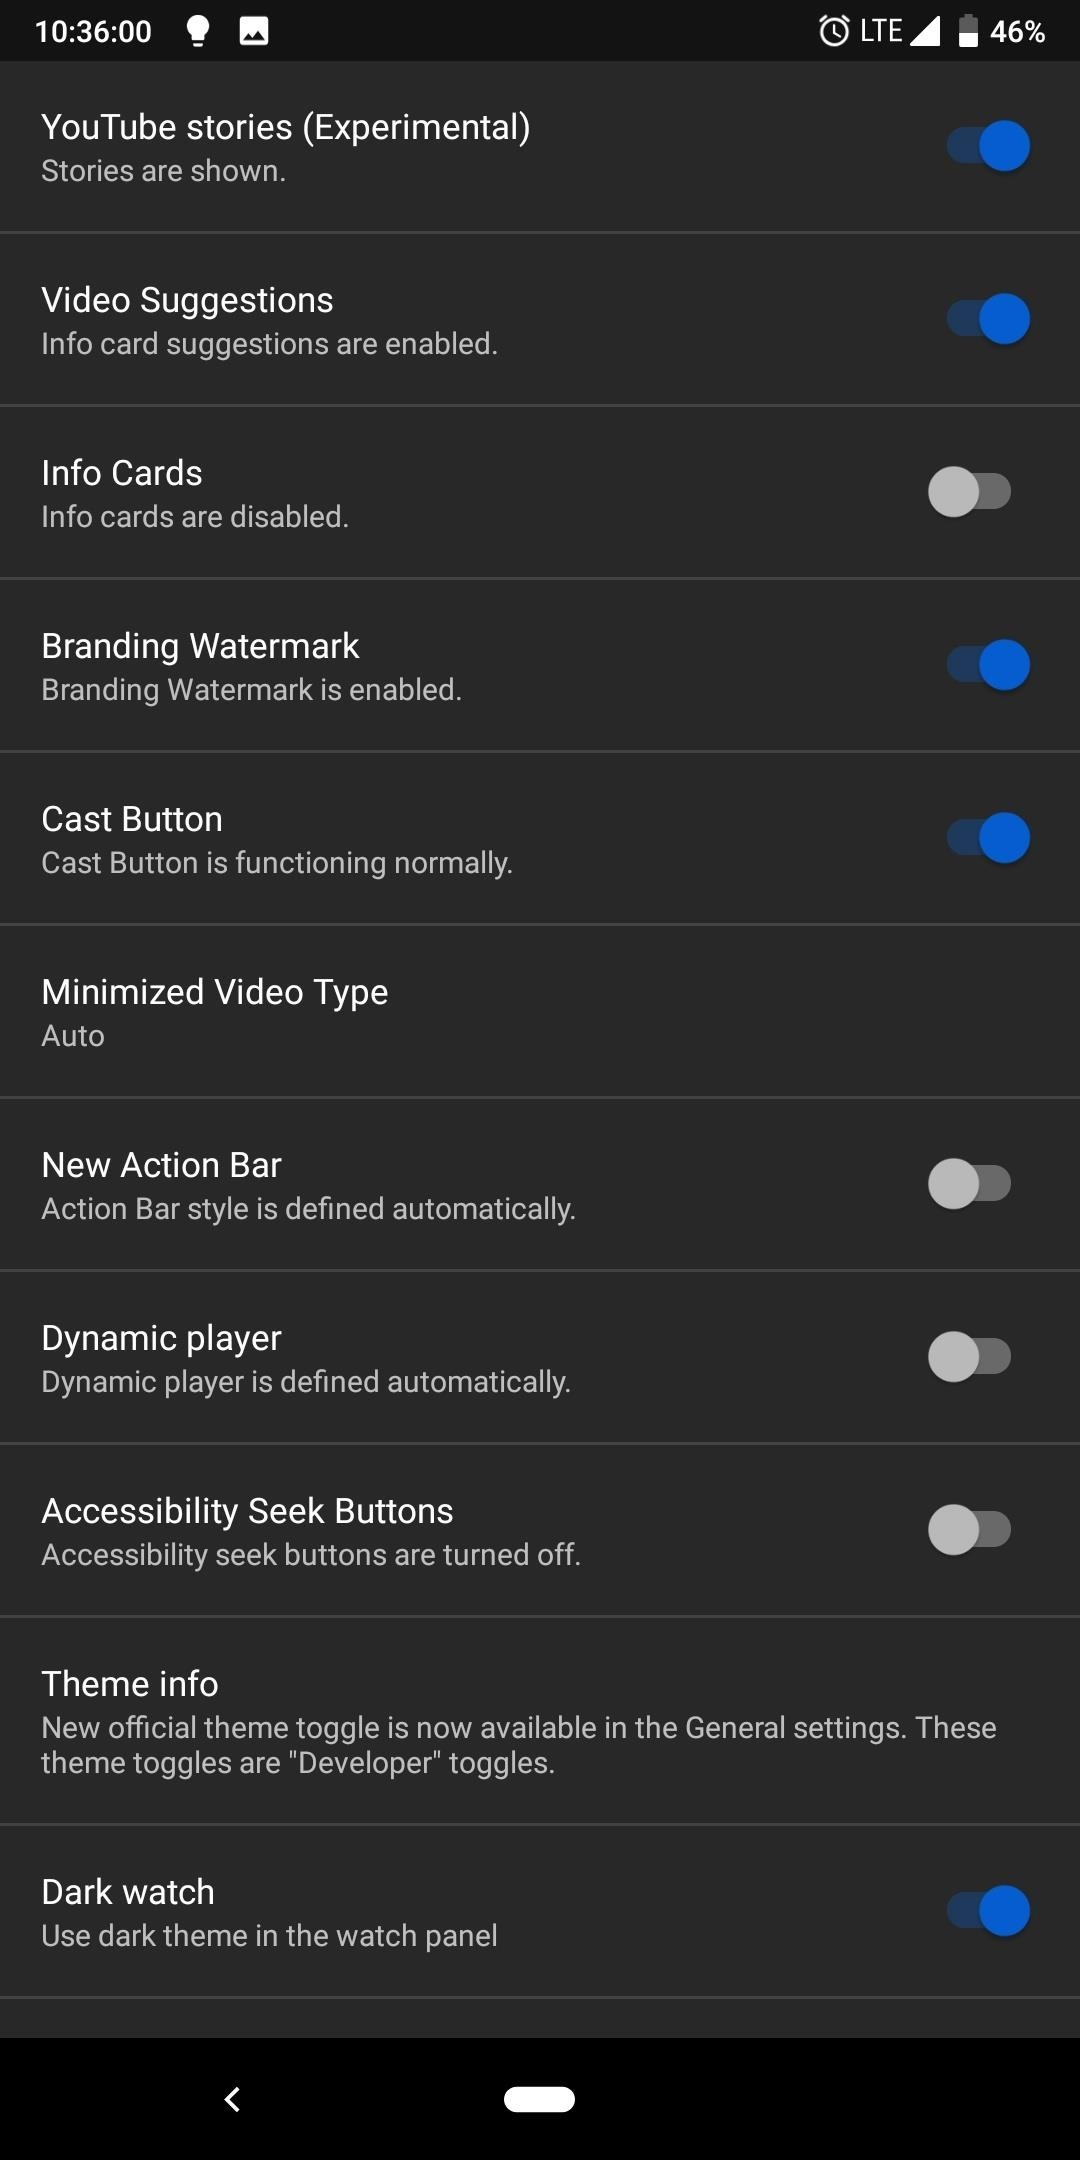 How to Get Custom Themes for YouTube on Android — Even a True Black OLED Theme